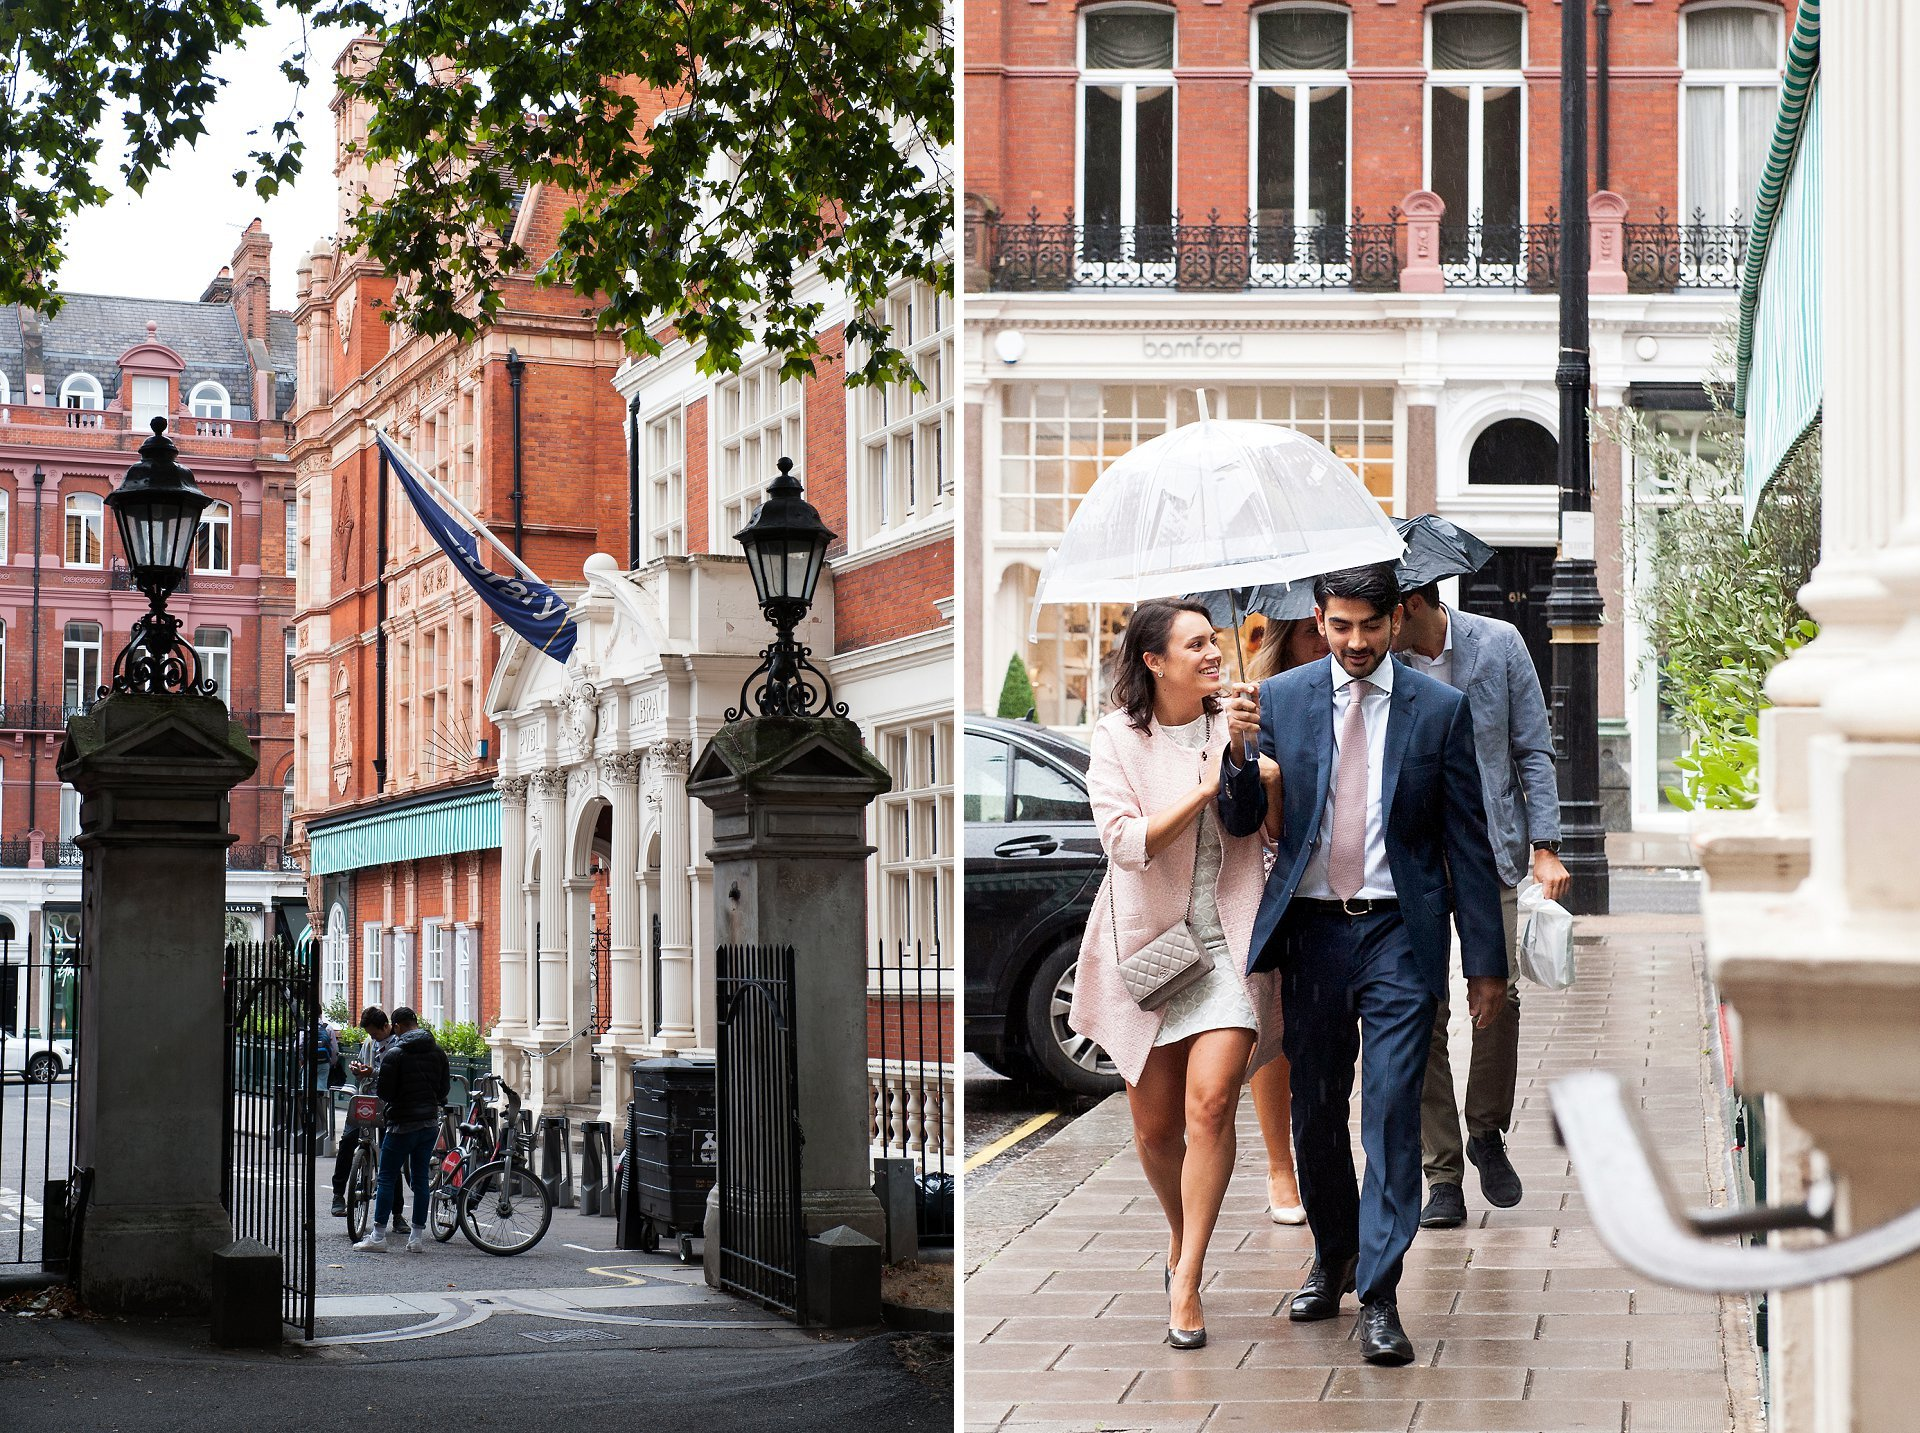 Mayfair Library rainy wedding photography - the bride and groom arrive on South Audley Street in Mayfair for their civil marriage ceremony at Westminster Register Office taking cover under a clear umbrella due to the heavy Autumn rain